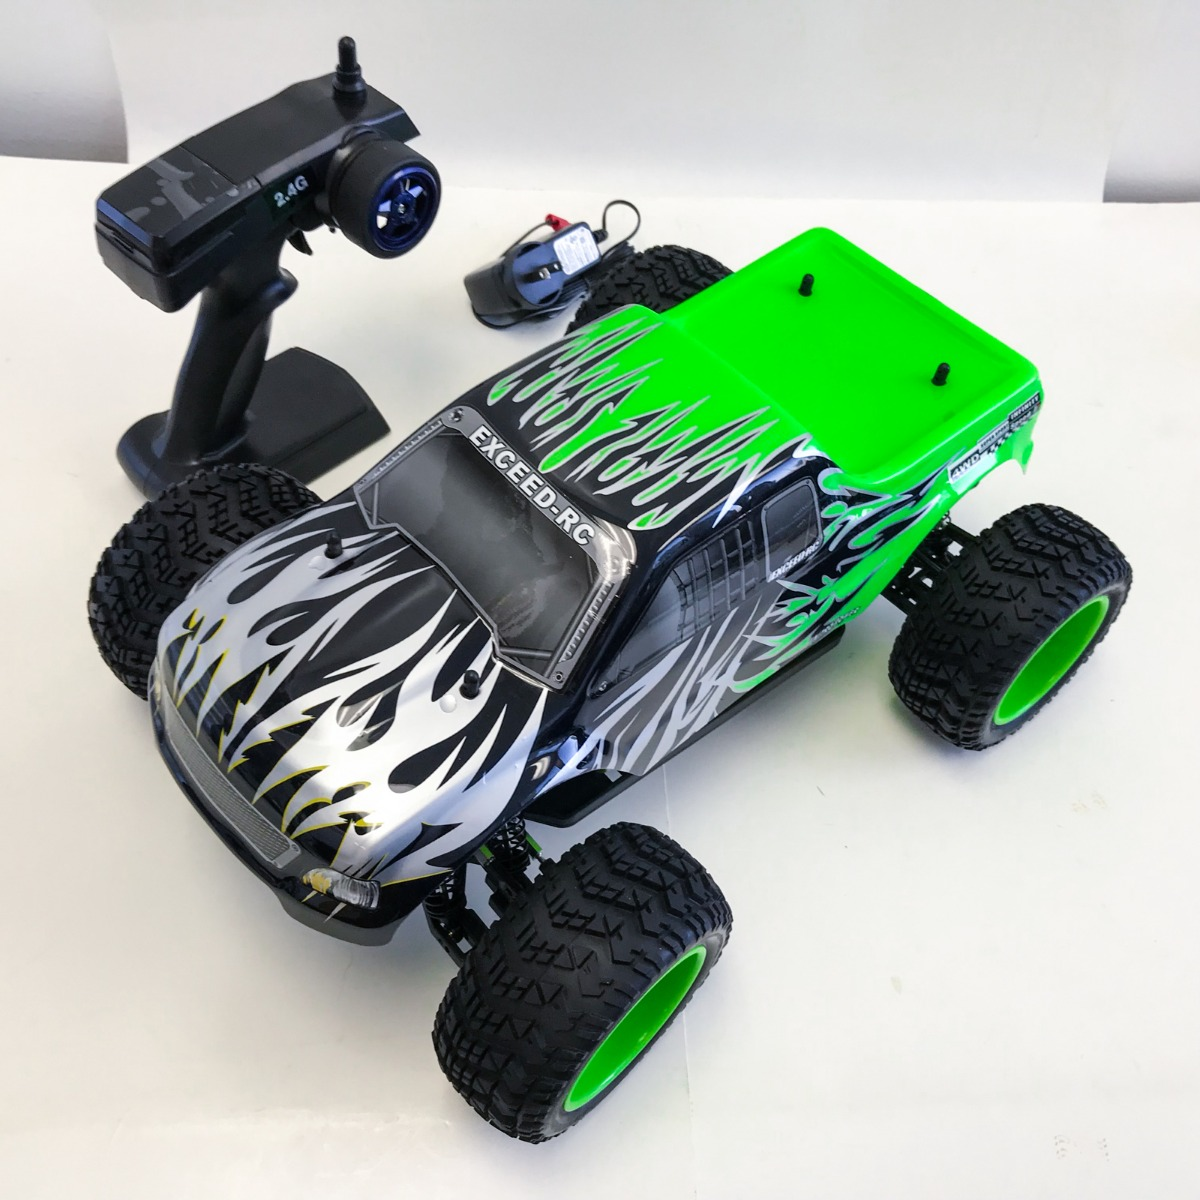 Rtr Rc Trucks Electric Details About New Exceed Rc Brushless Pro 2 4g Electric Rtr Off Road Rc Truck Sava Green